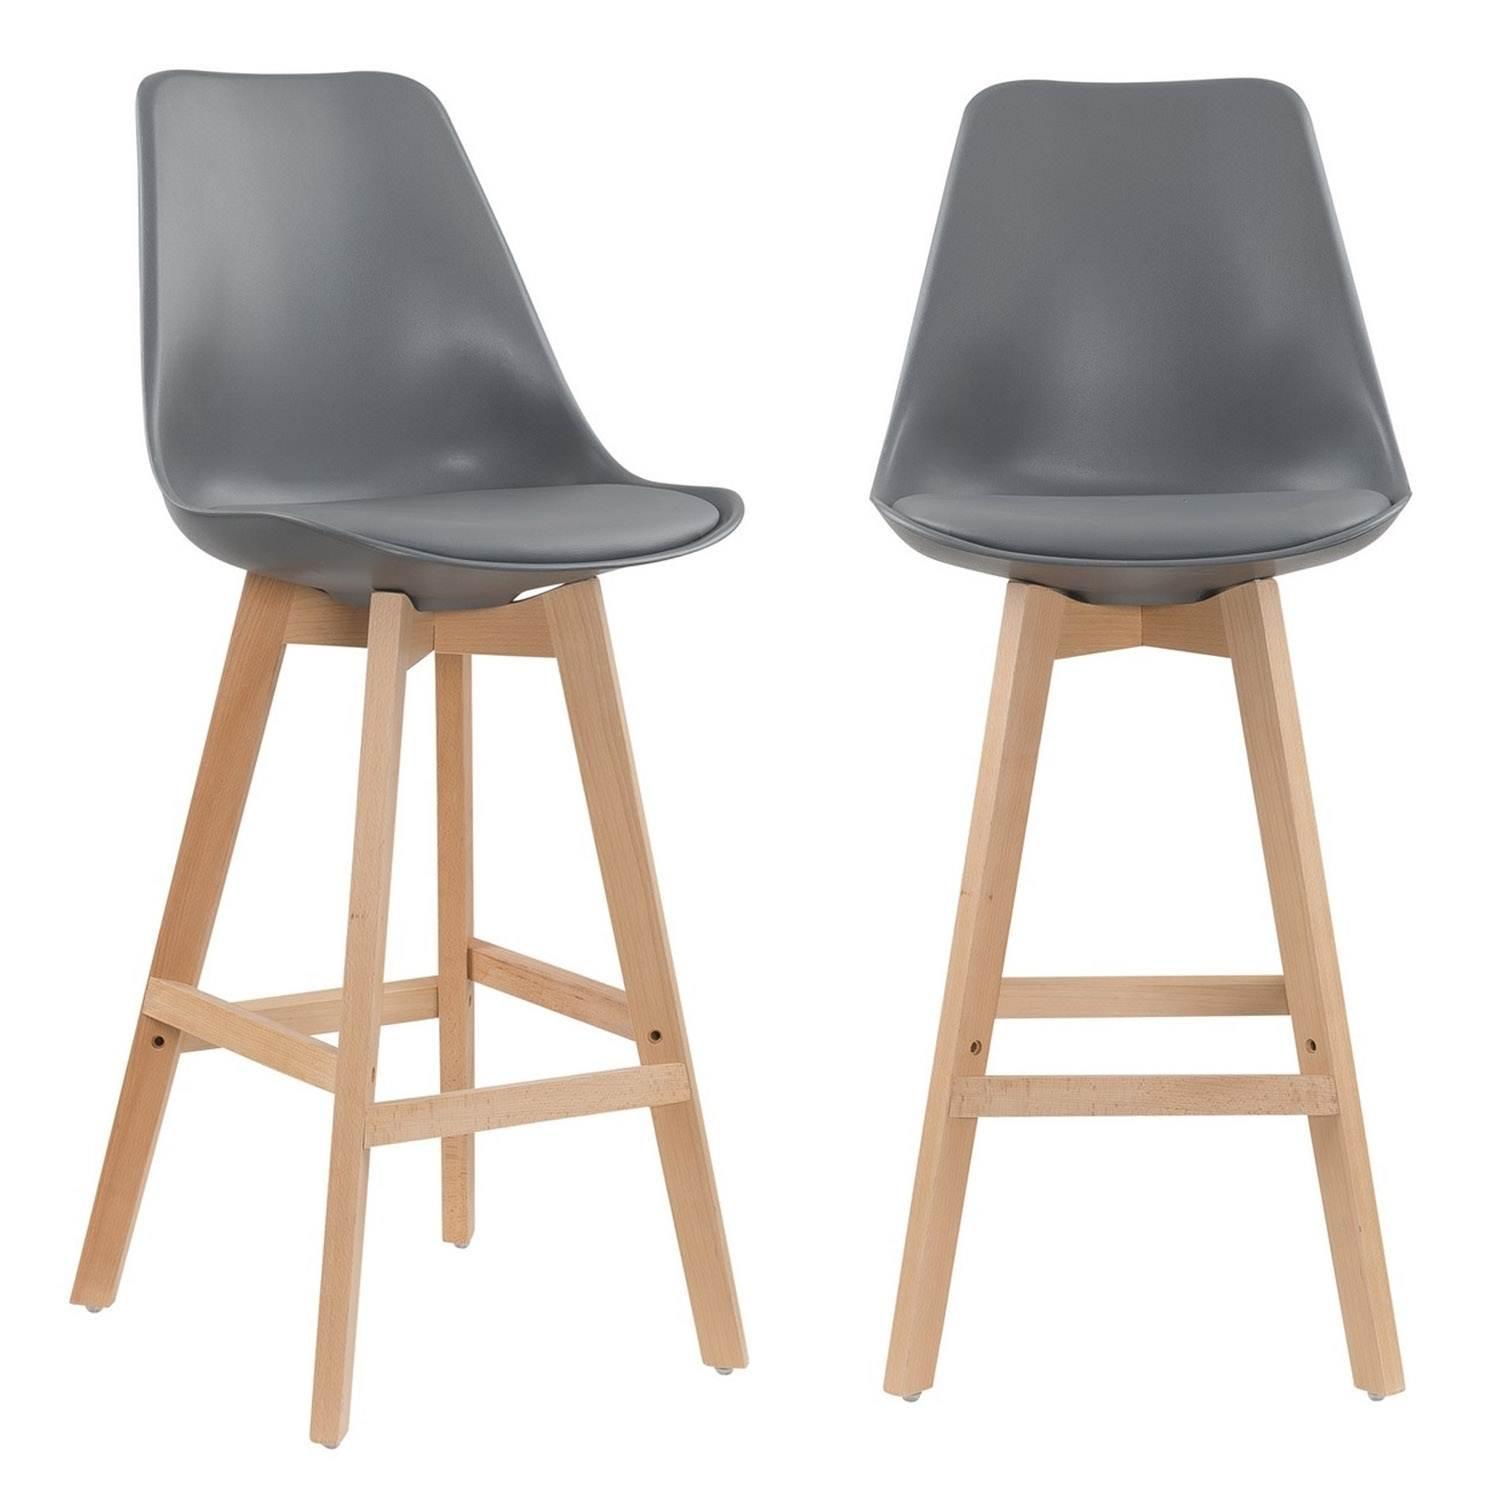 Charly Lot De 2 Tabourets De Bar Blancs Deco In Paris 8 Lot De 2 Tabourets De Bar Scandinave